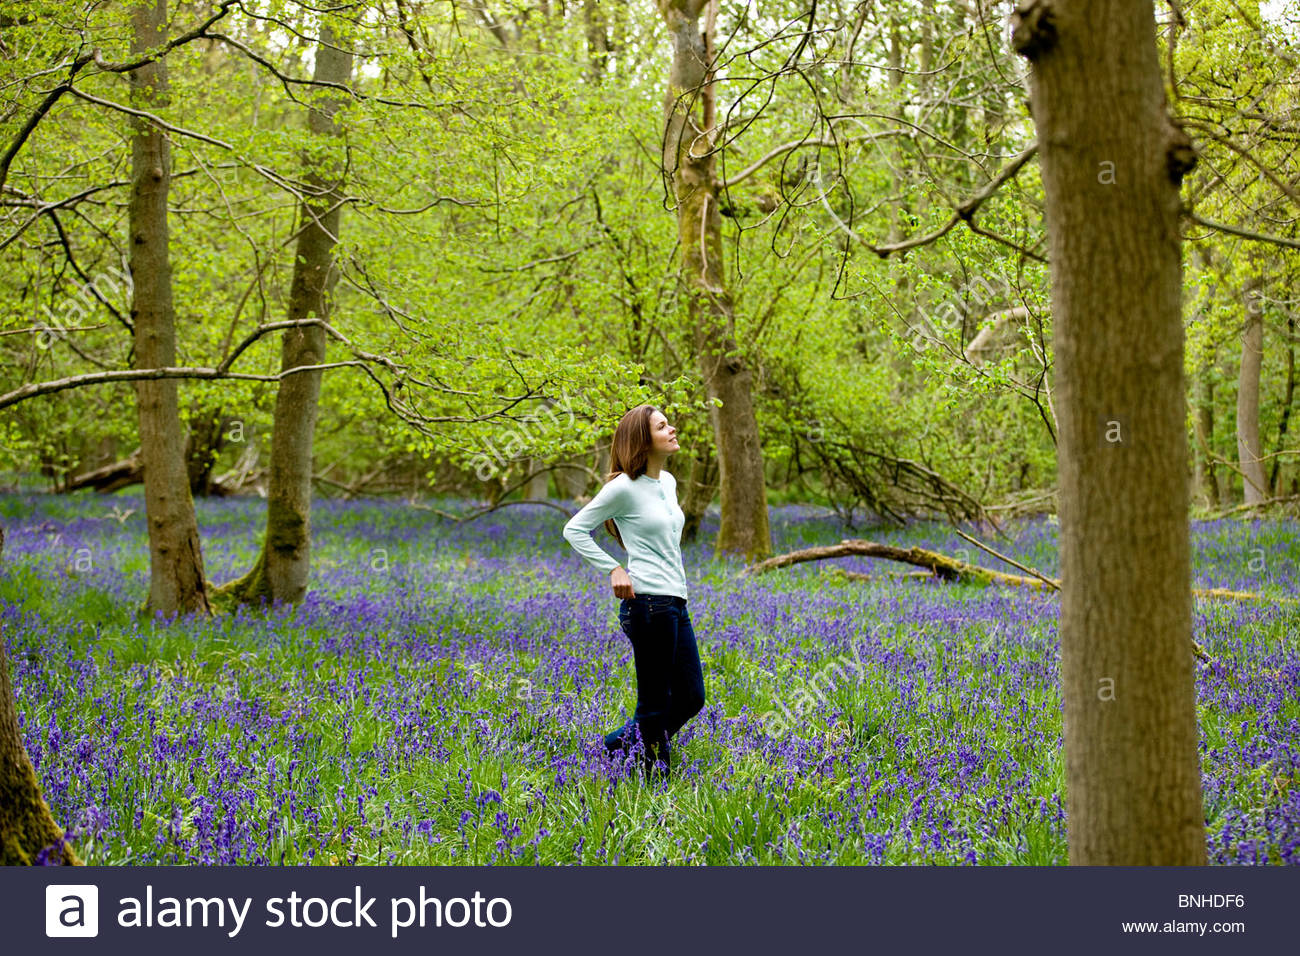 A young woman walking through a bluebell wood - Stock Image